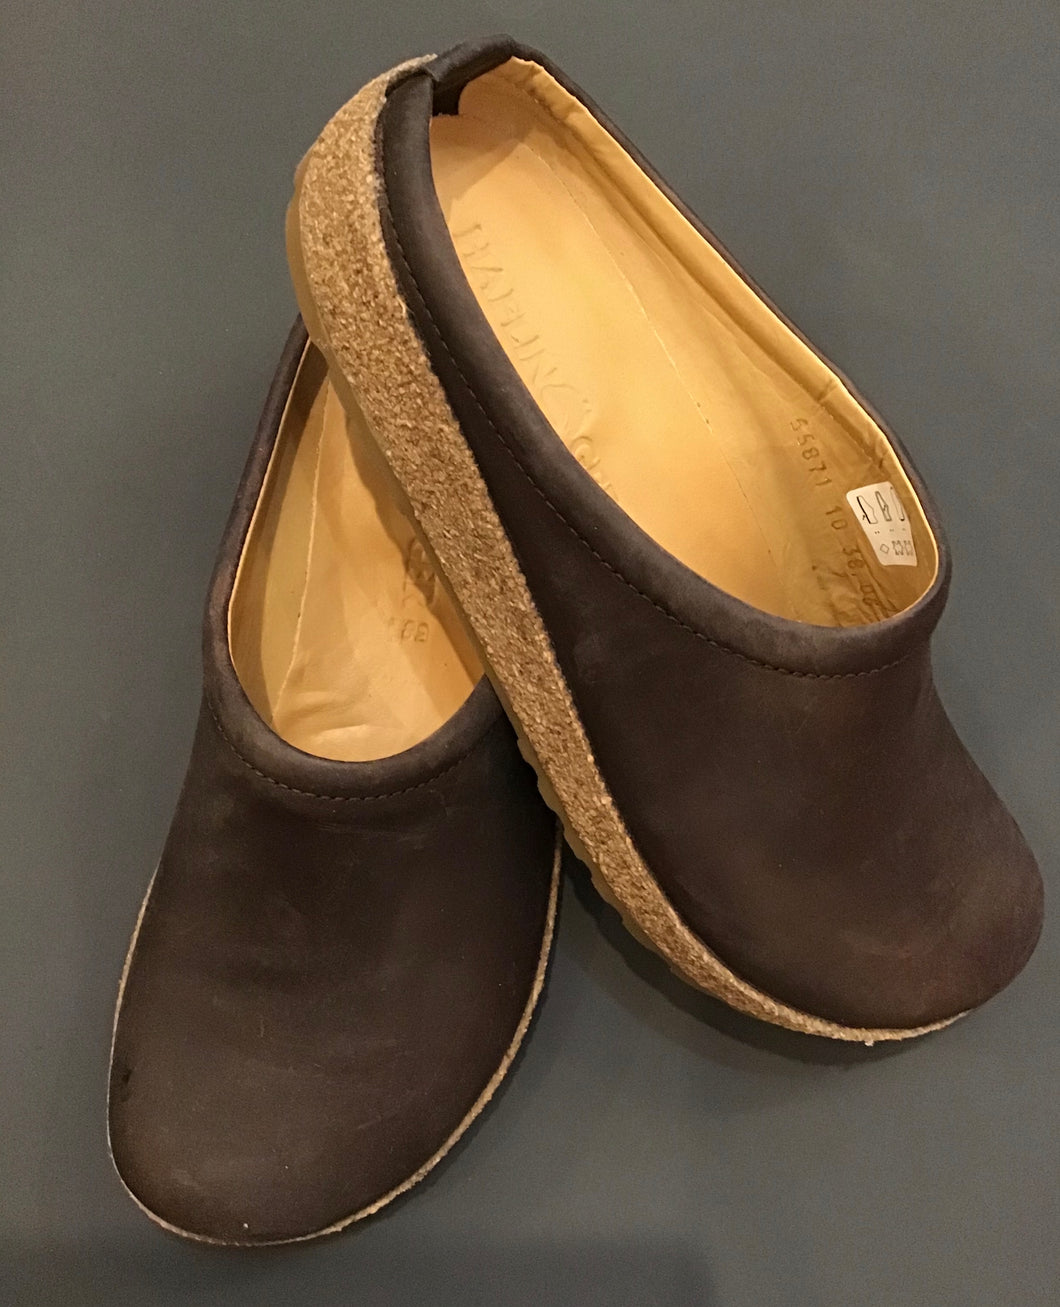 Phillip Leather Haflinger Slip On Shoe